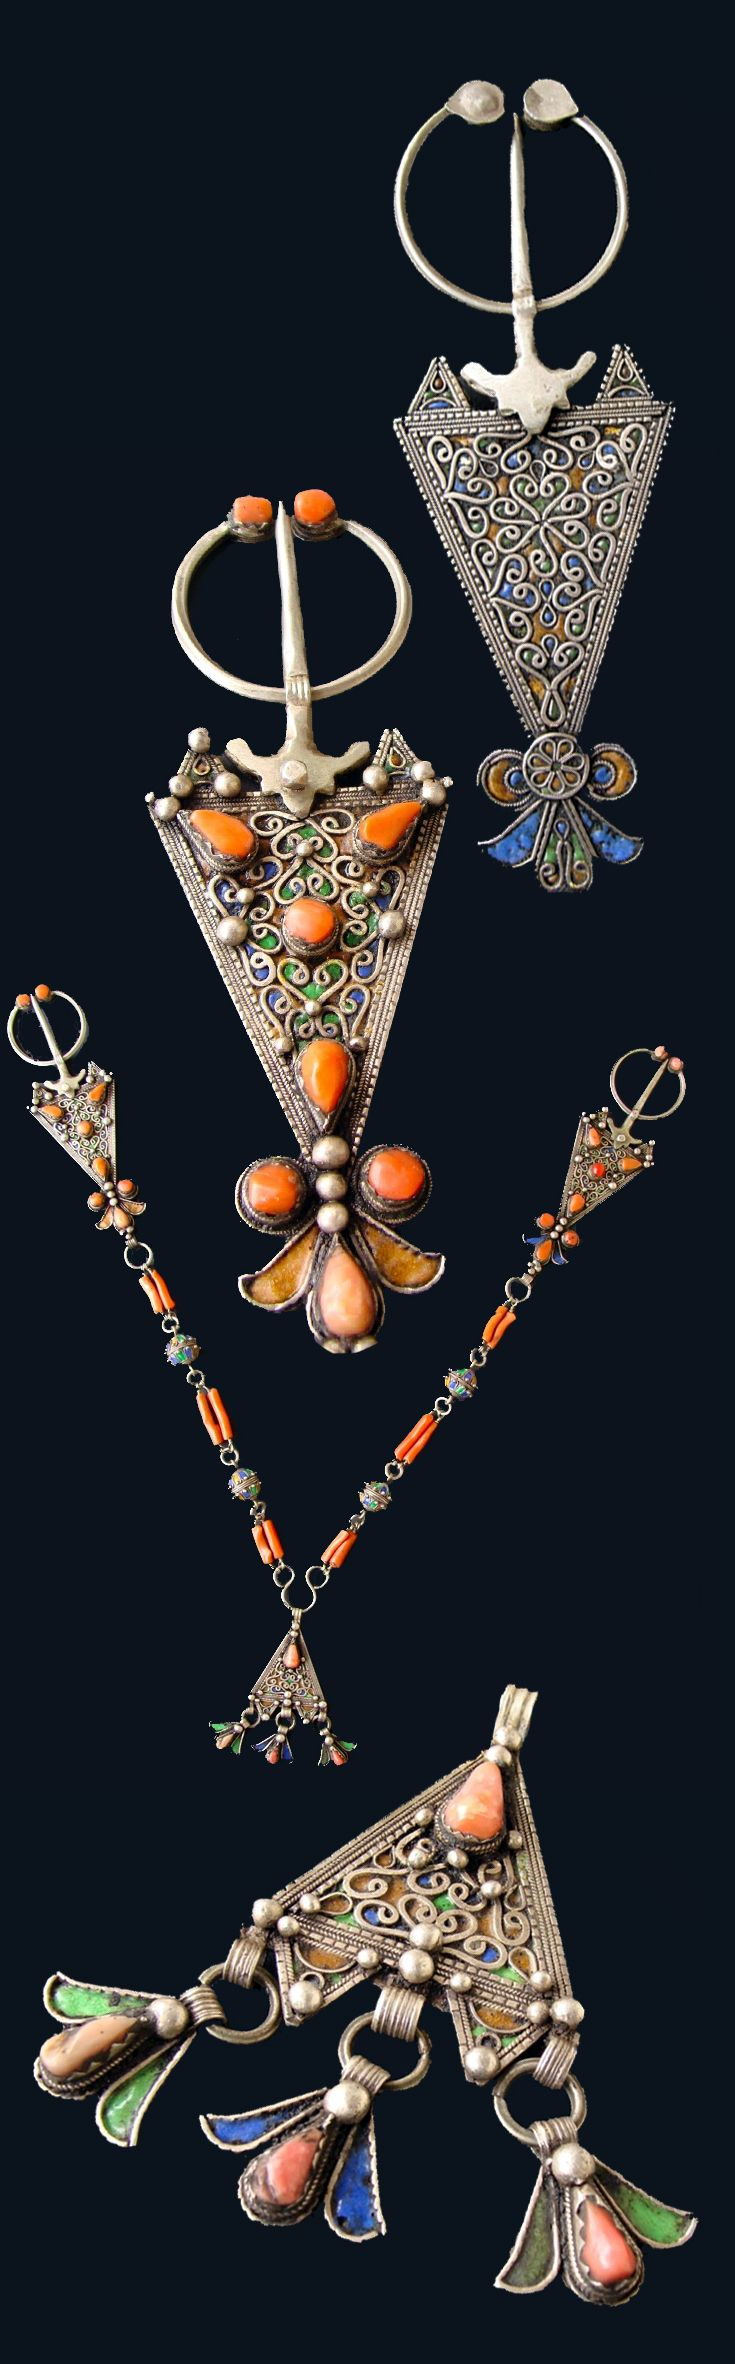 Fibua necklace / pectoral; silver, enamel and coral | 1'570$ sold   ||| Source; http://www.ebay.co.uk/itm/Long-Antique-Berber-FIBULA-Necklace-Collar-Silver-Enamel-Corals-19TH-Century-/141376185372